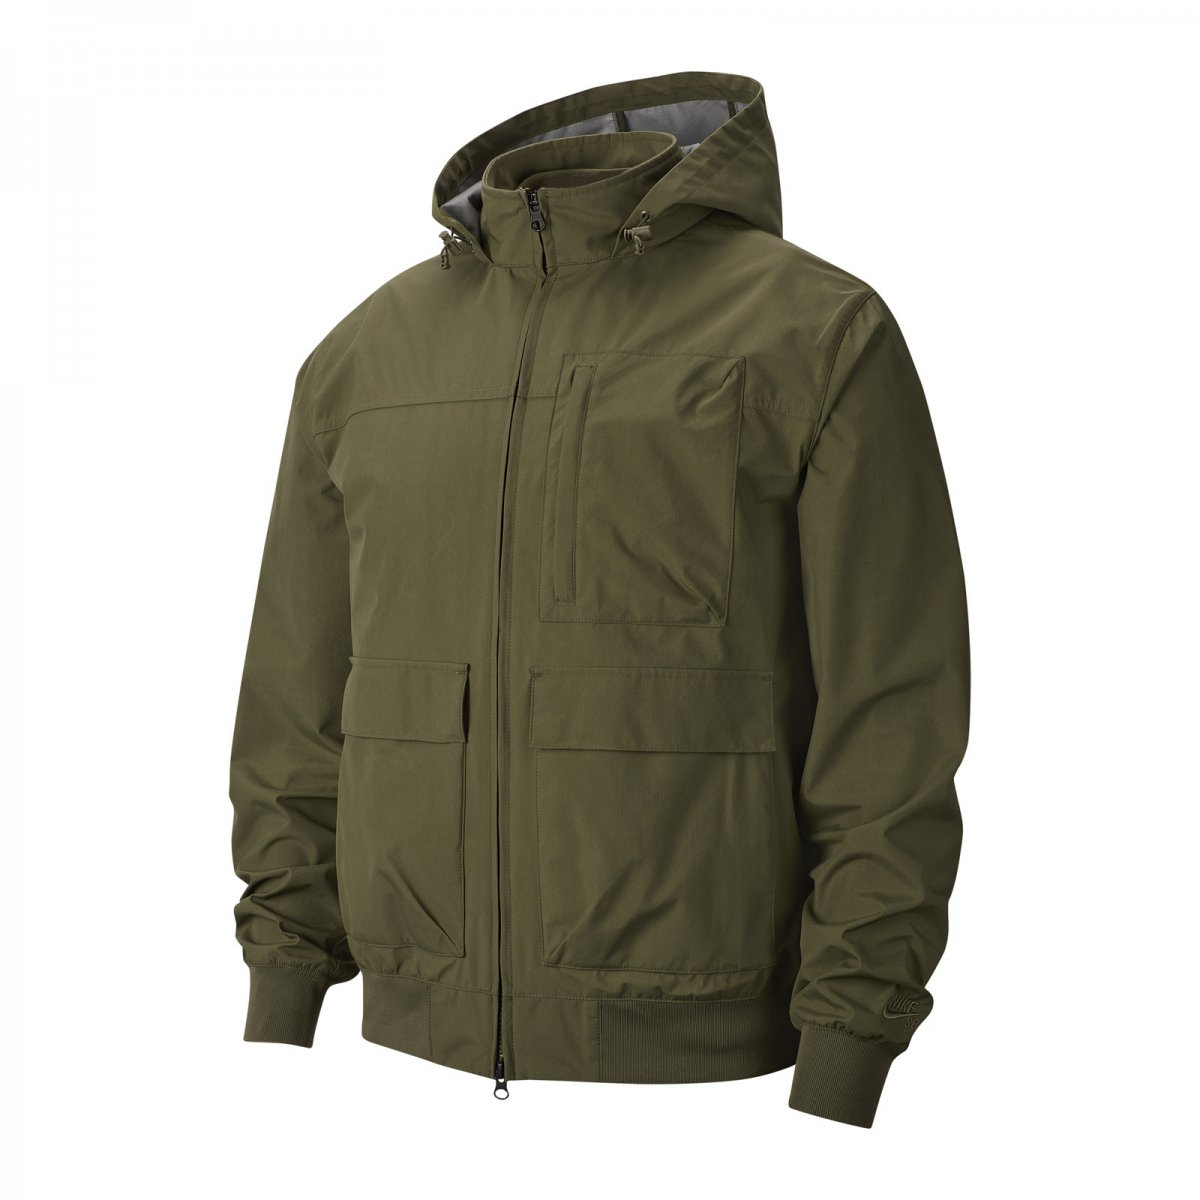 WINTERIZED JACKET